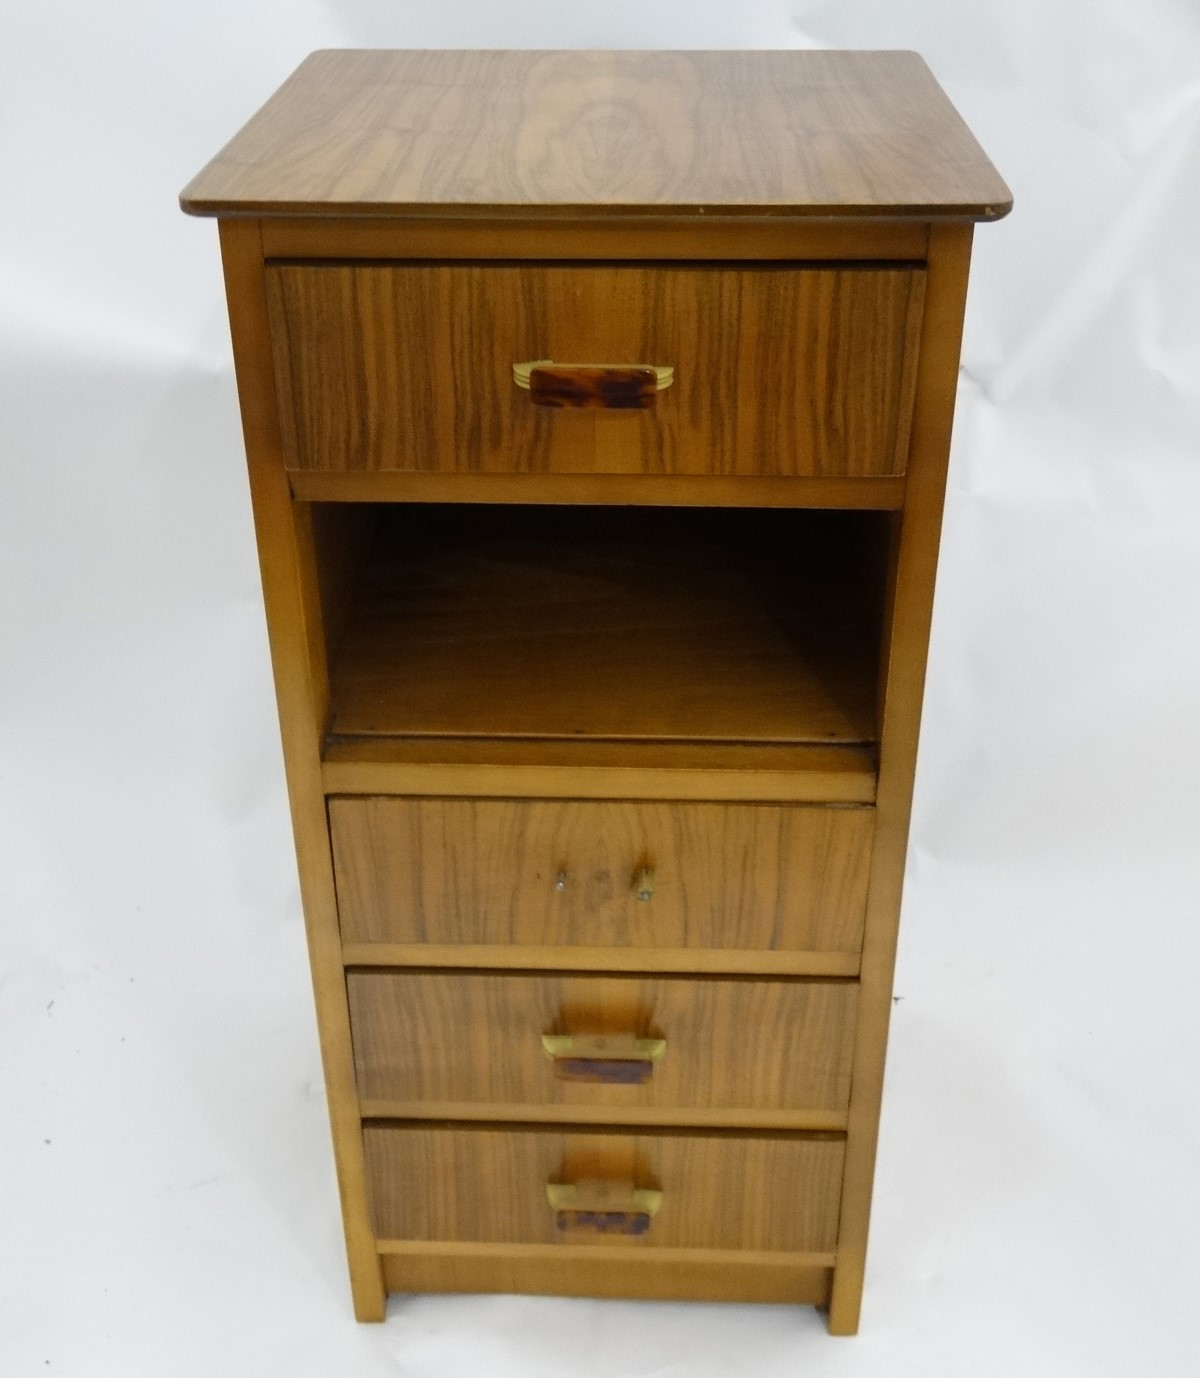 Lot 8 - A retro walnut bedside cabinet by Avalon CONDITION: Please Note - we do not make